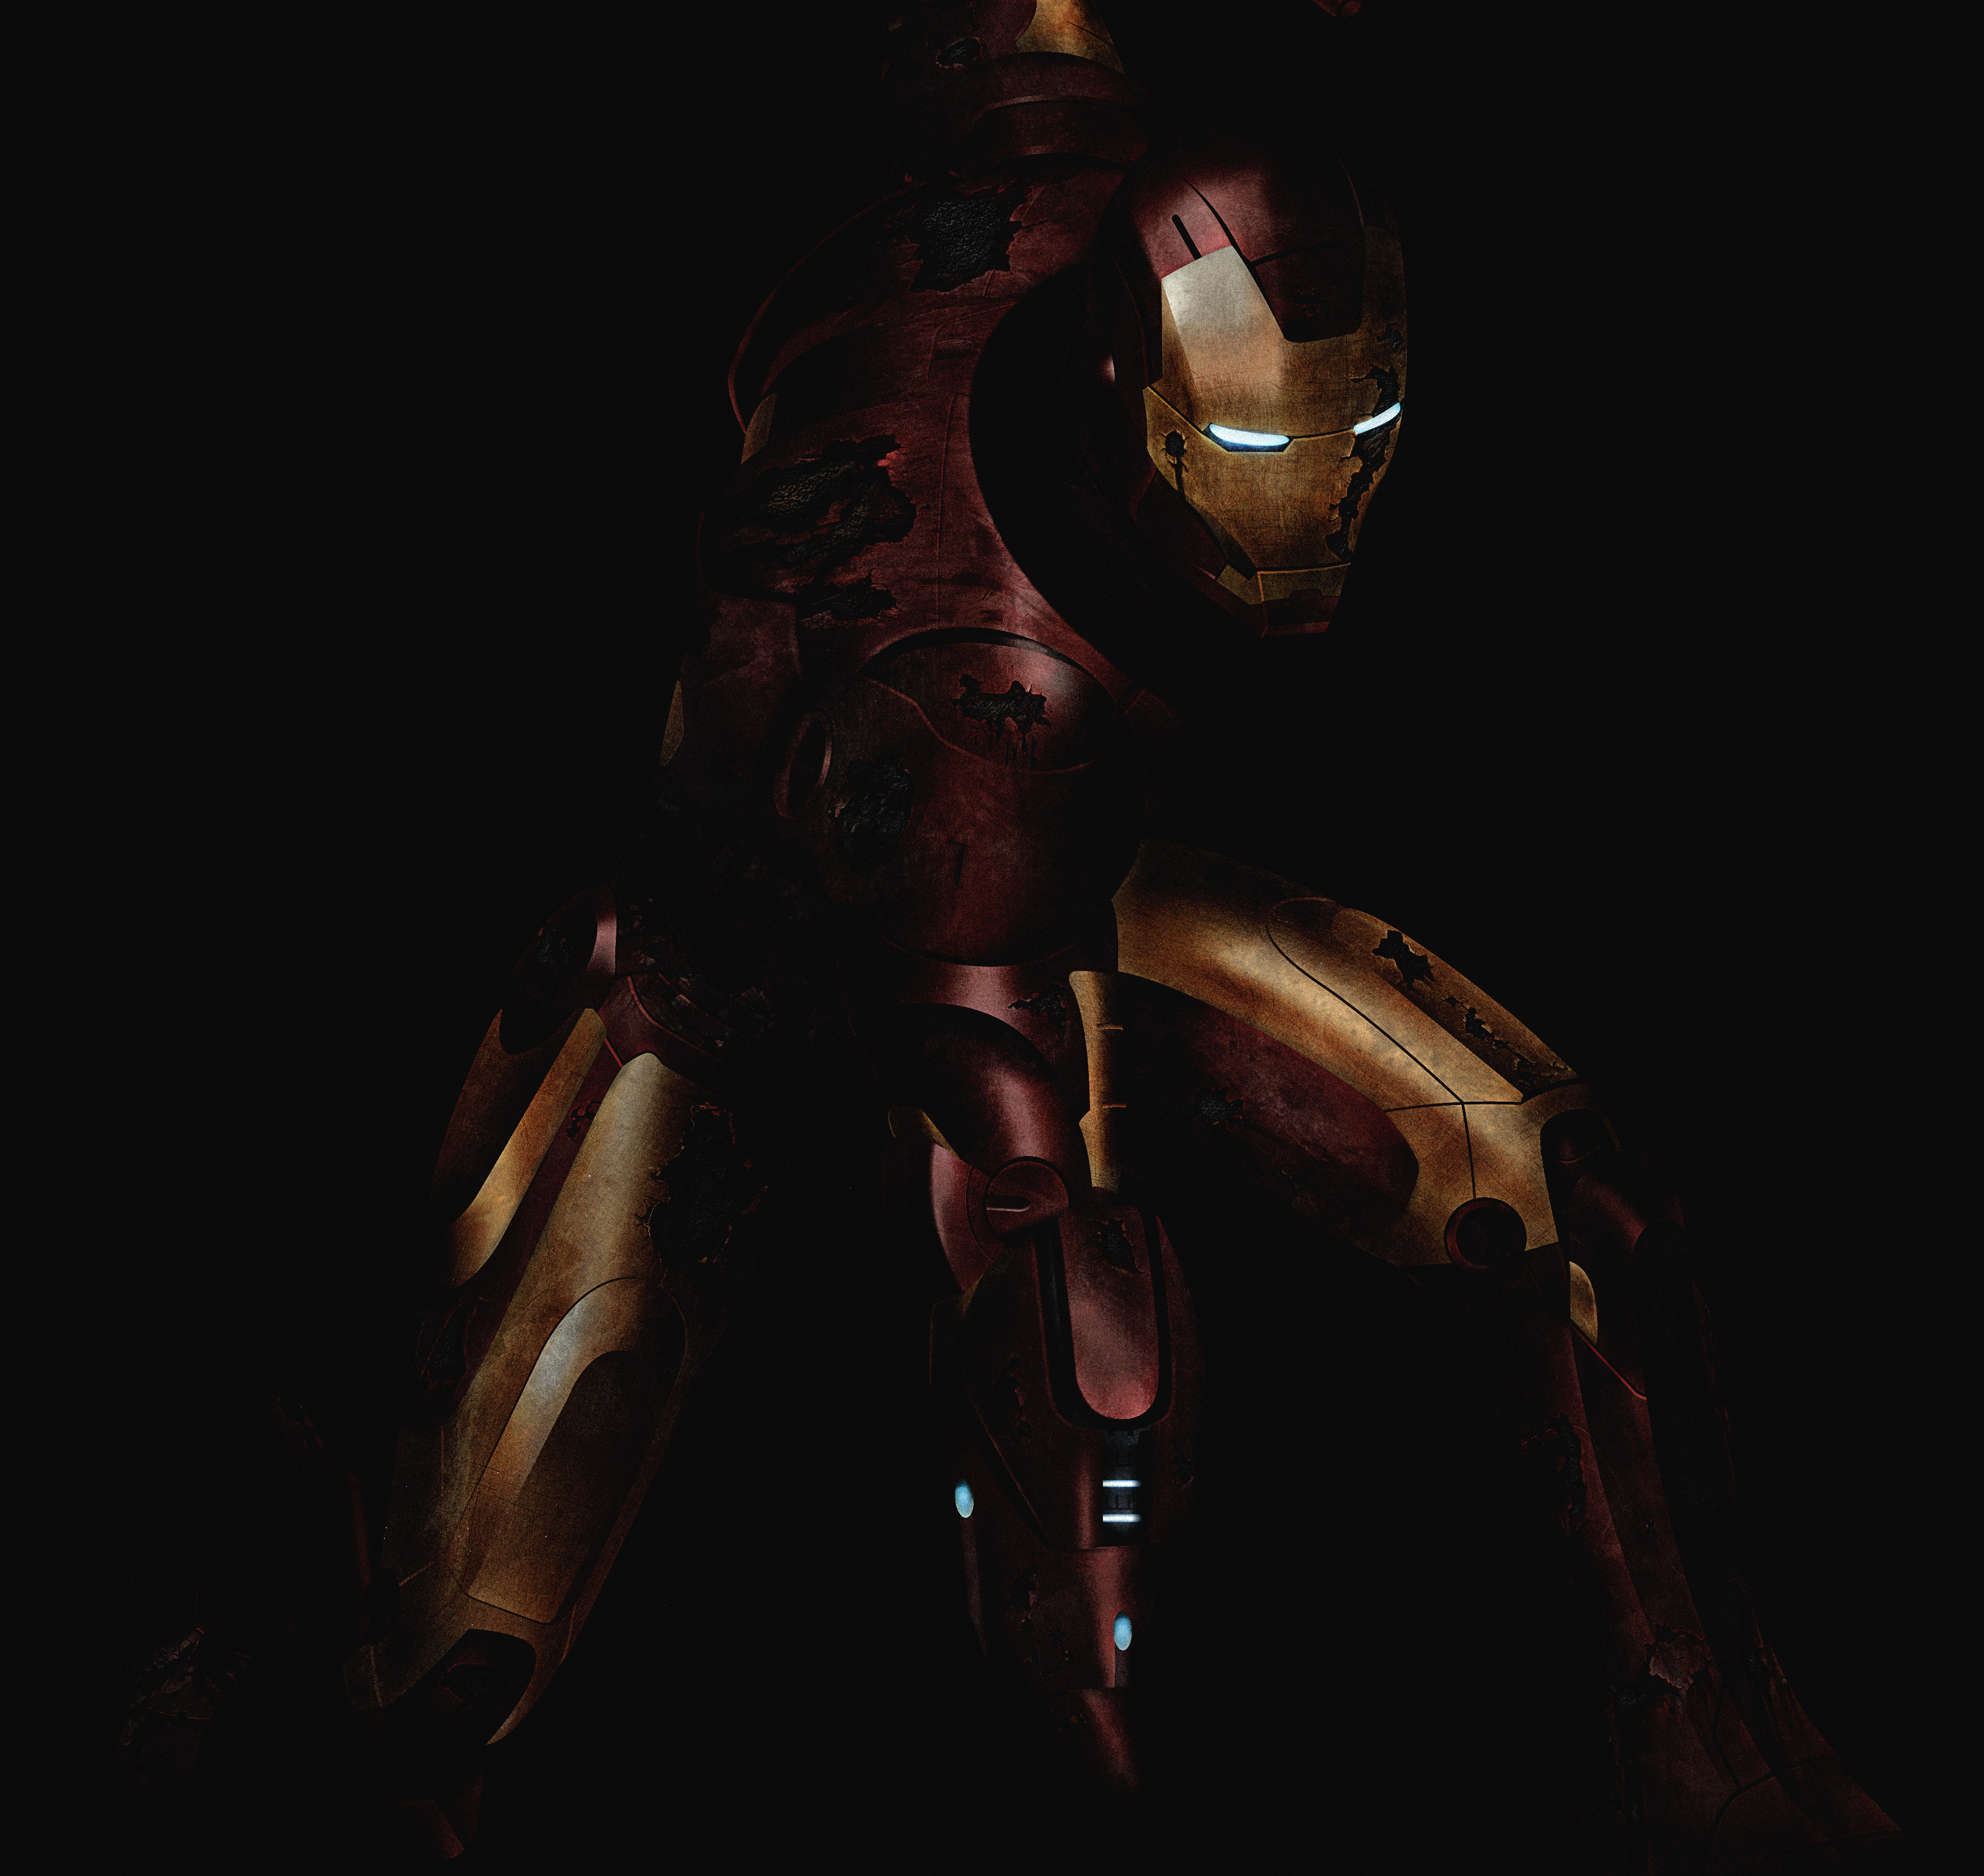 Iron Man Based on Adi Granovs Iron Man Illustration